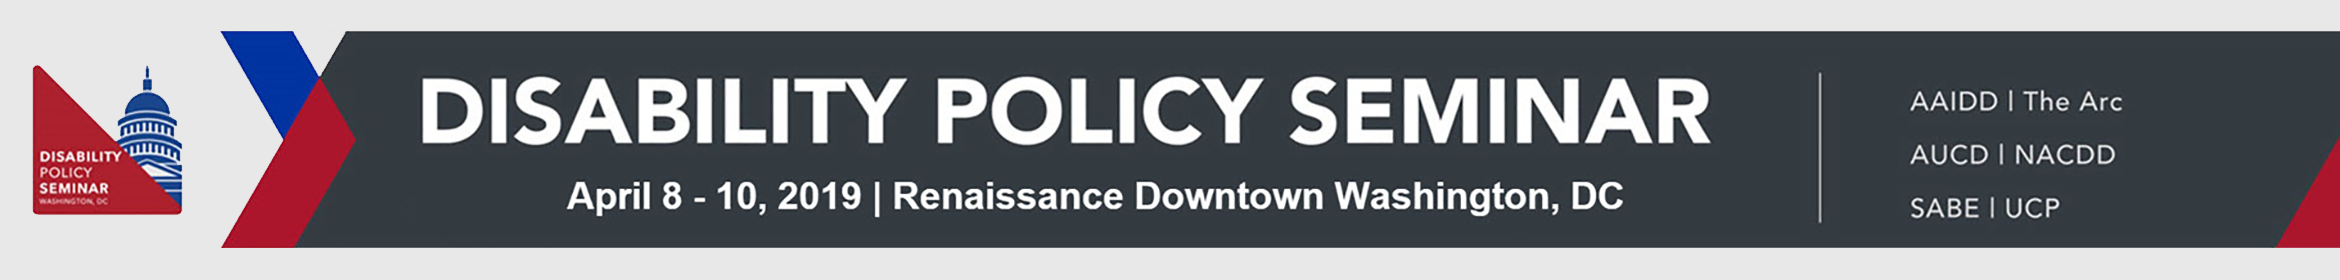 2019 Disability Policy Seminar Main banner